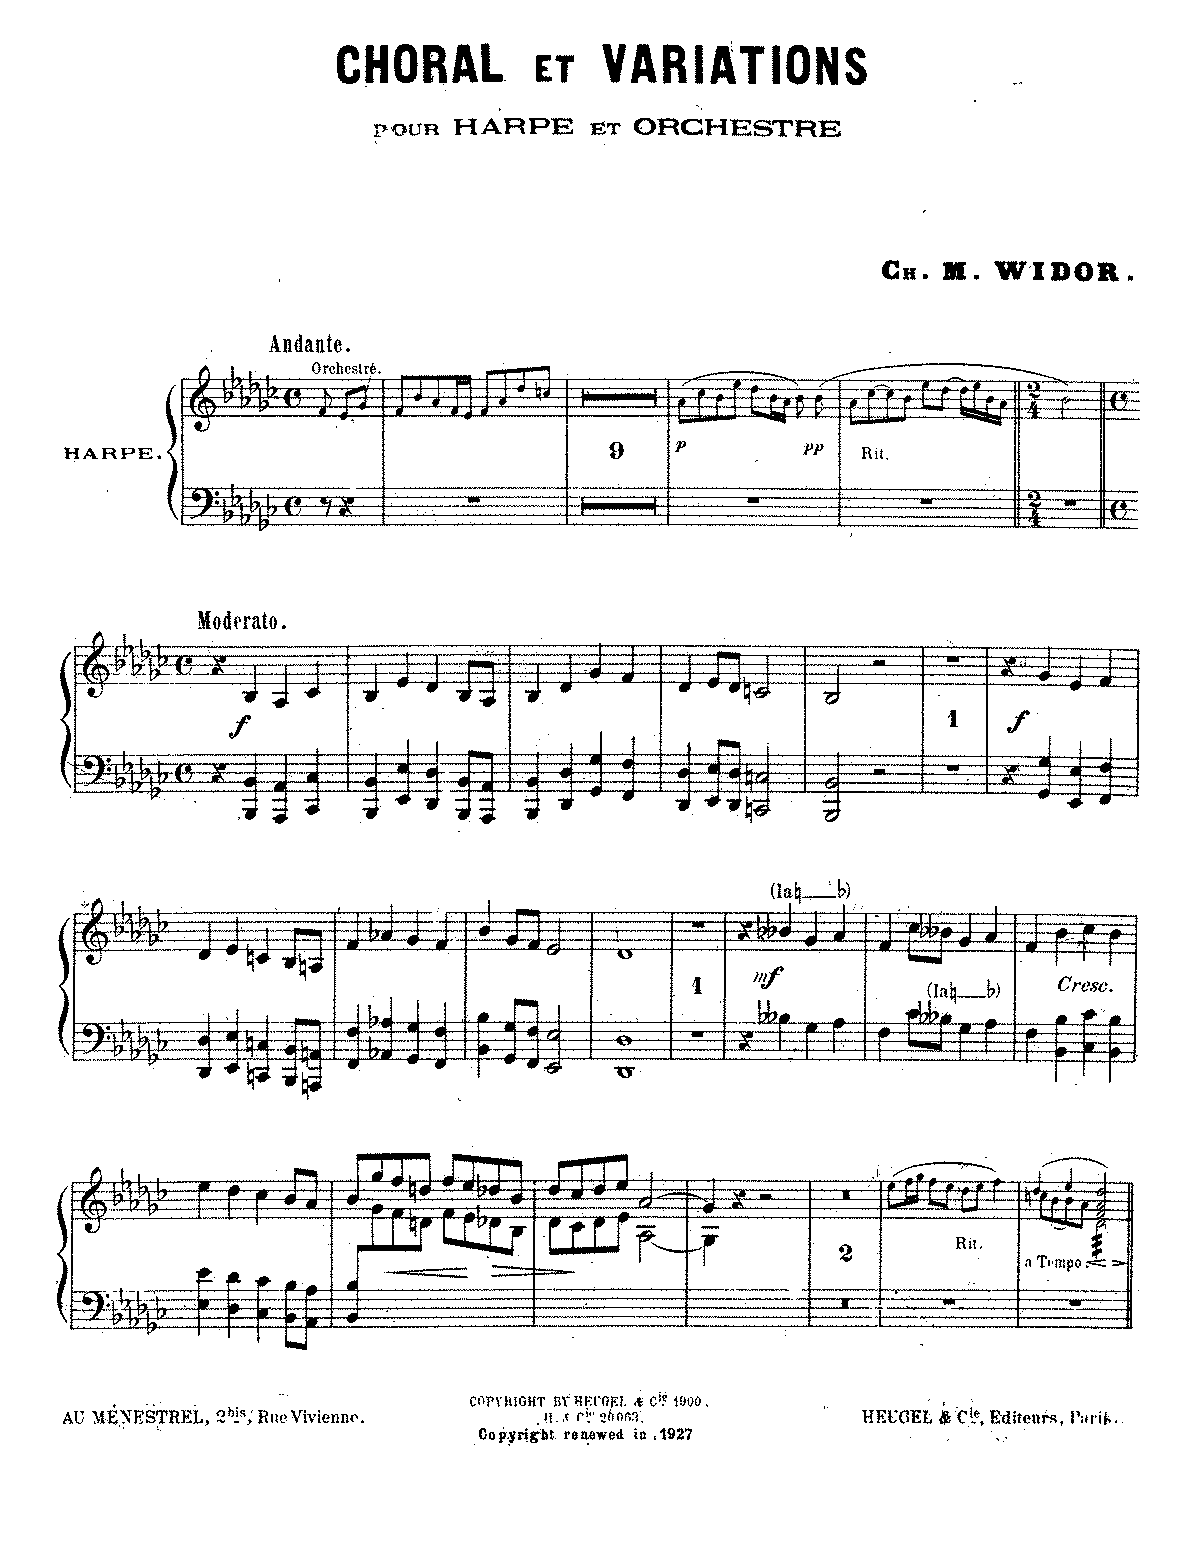 PMLP198033-Widor - Choral et variations (trans. harp and piano).pdf